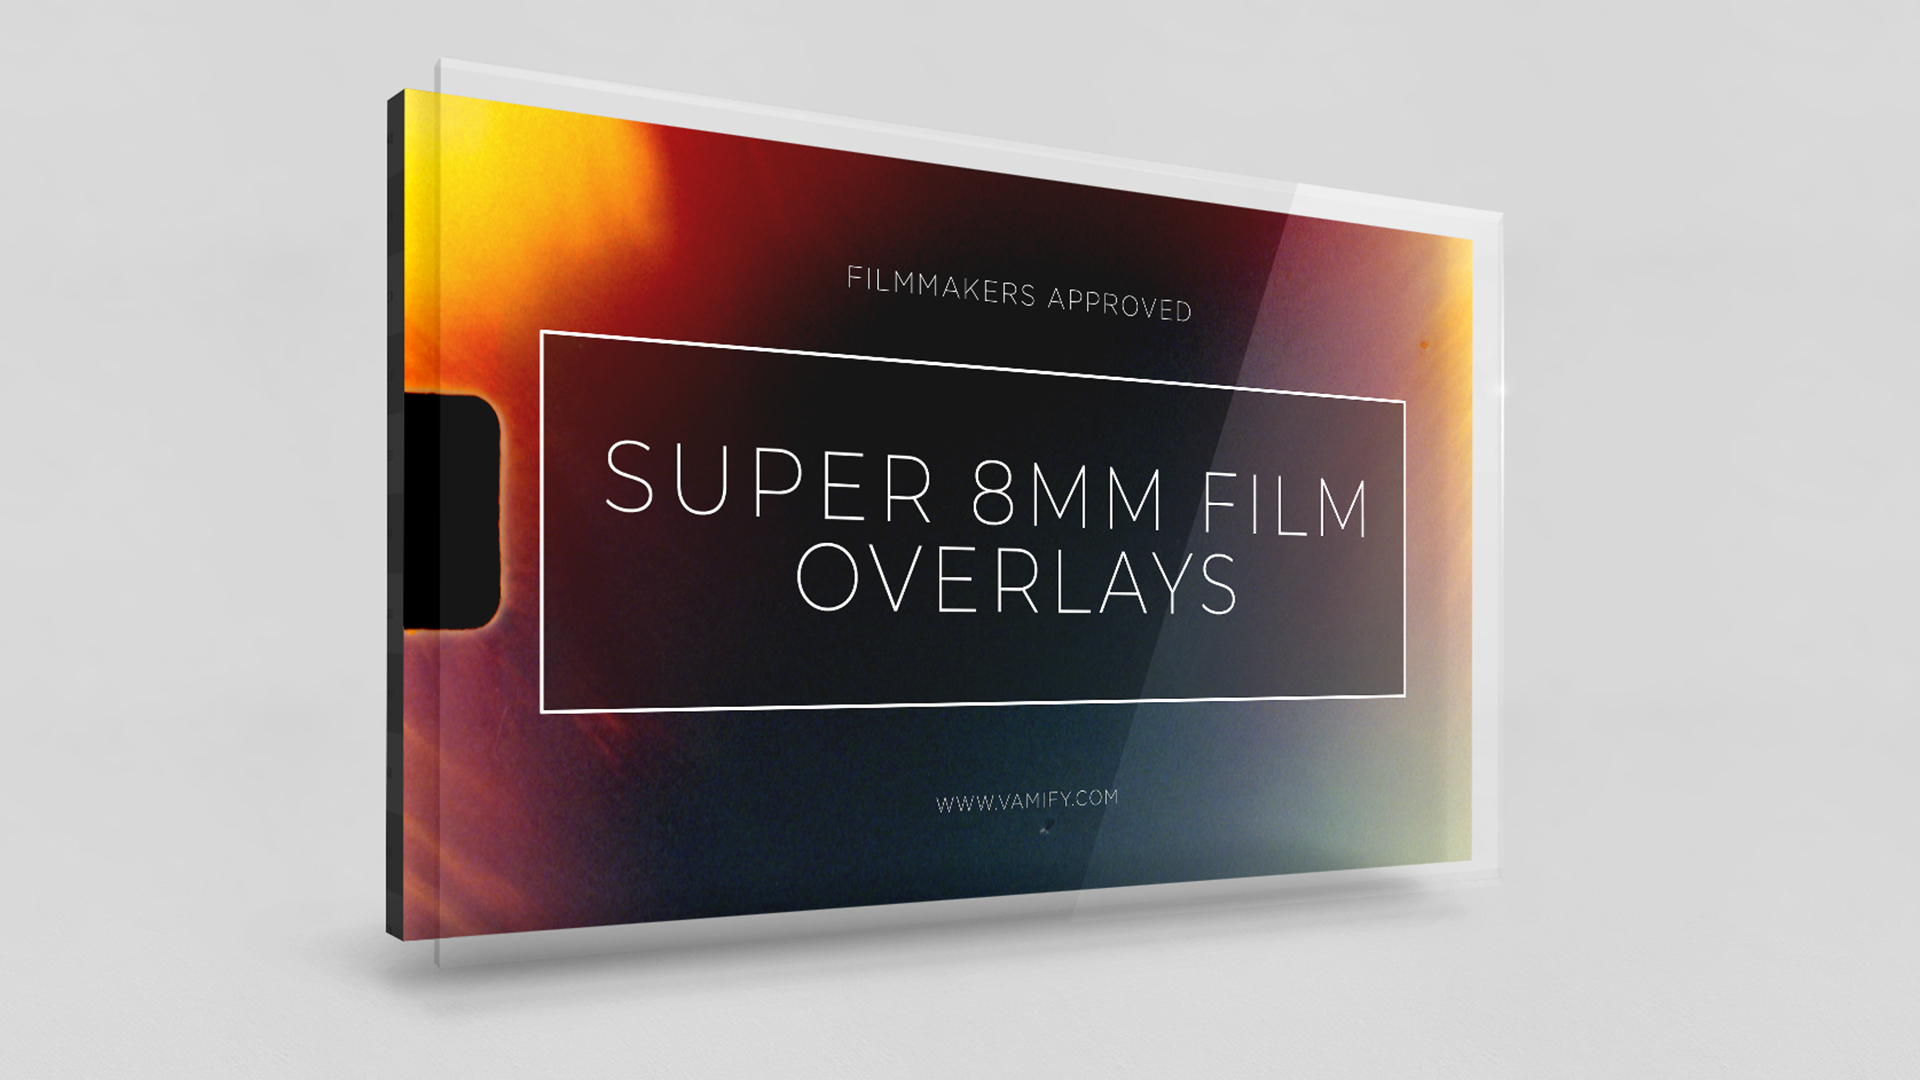 super 8mm film overlays